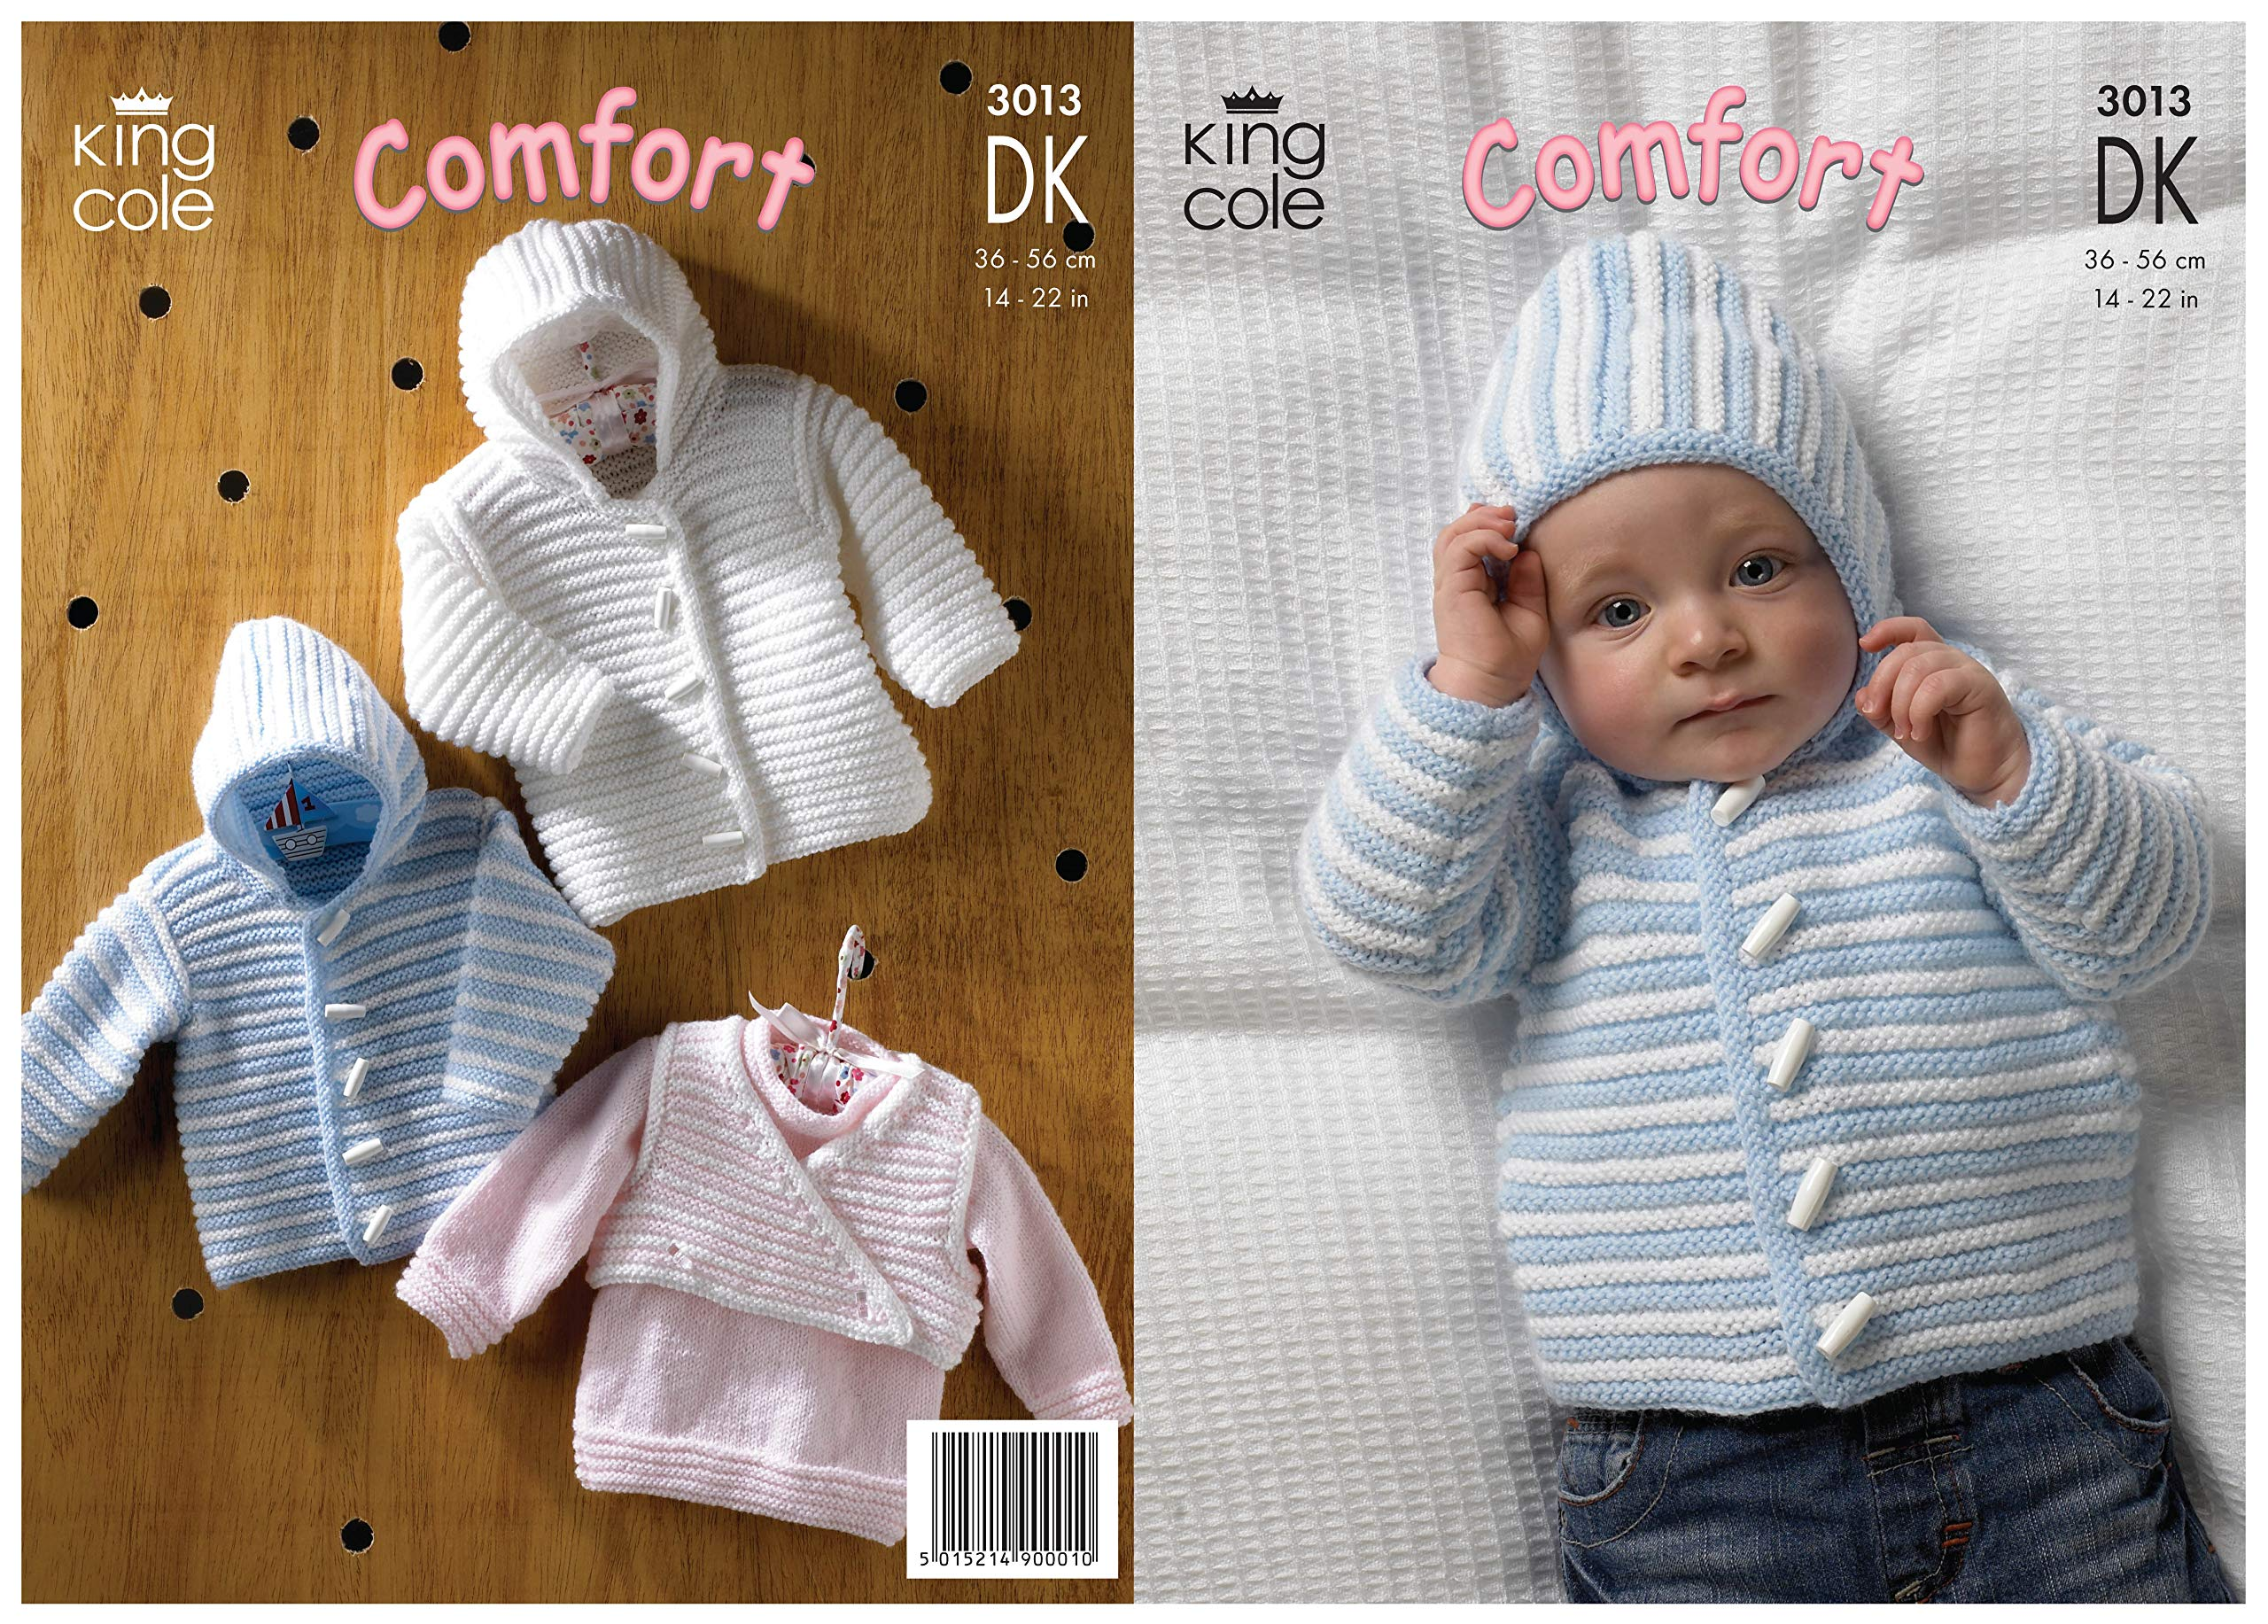 2e61206a8 King Cole Baby Comfort DK pattern 3013 14